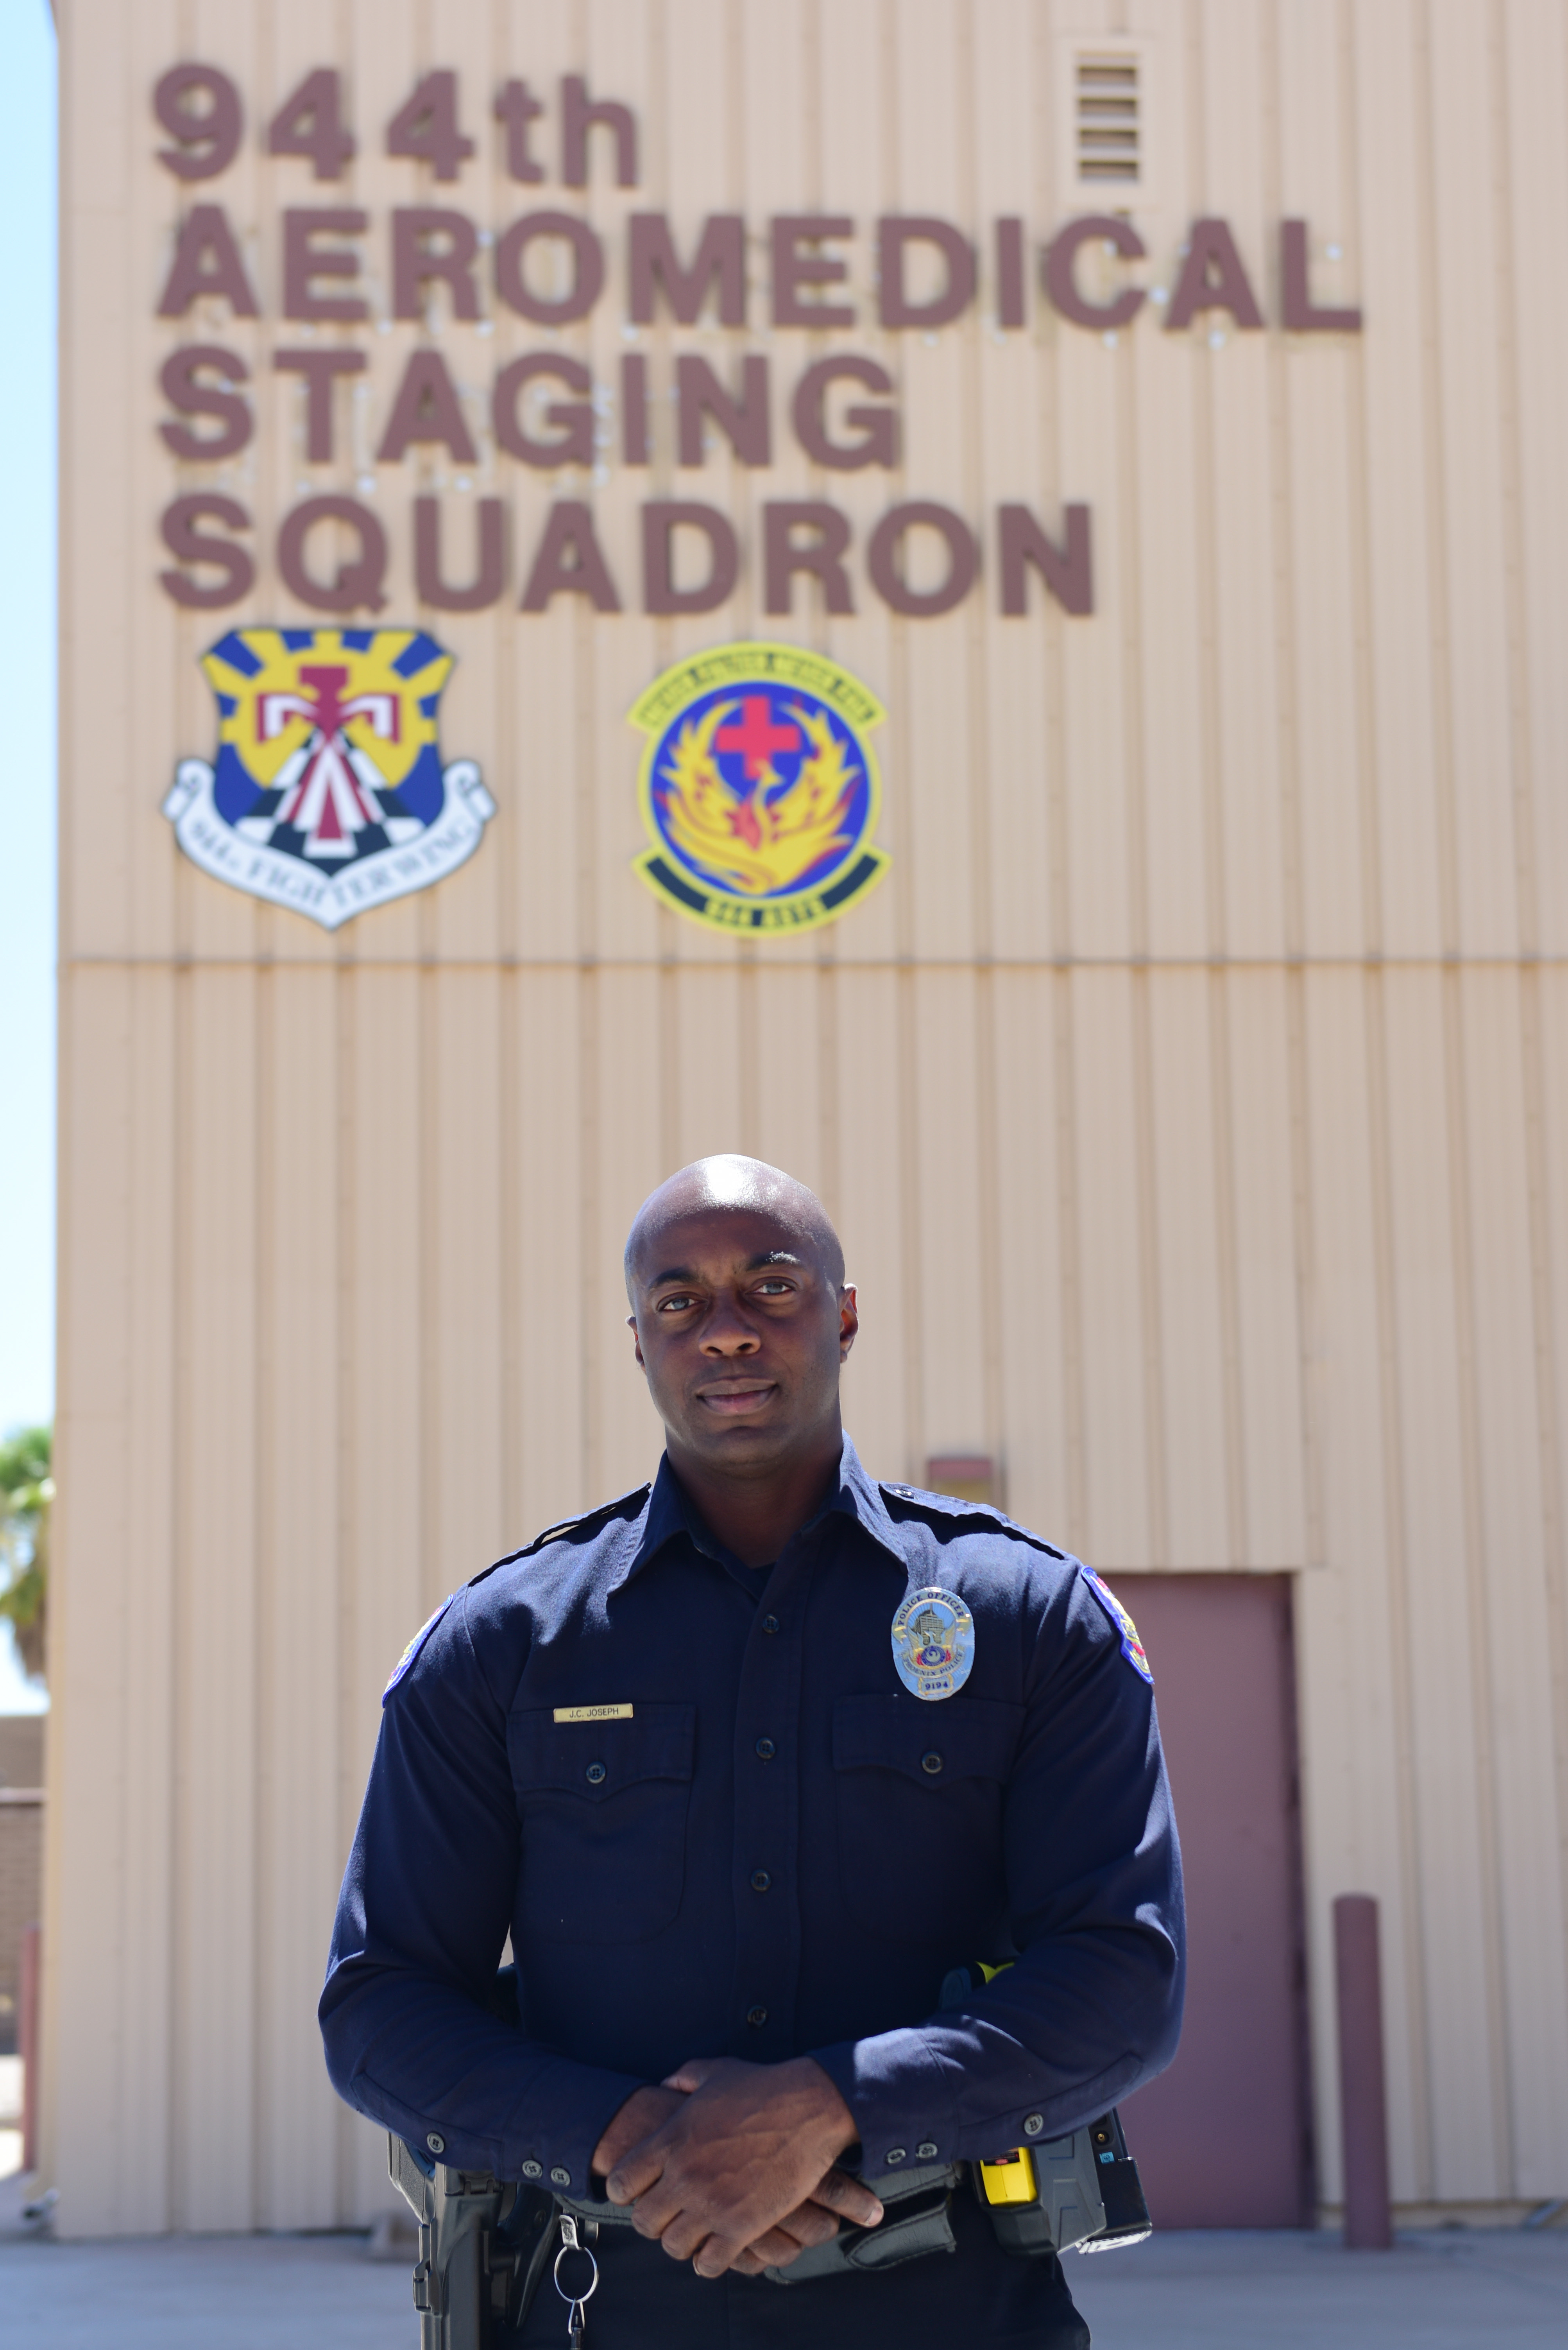 face of defense reserve airman saves child